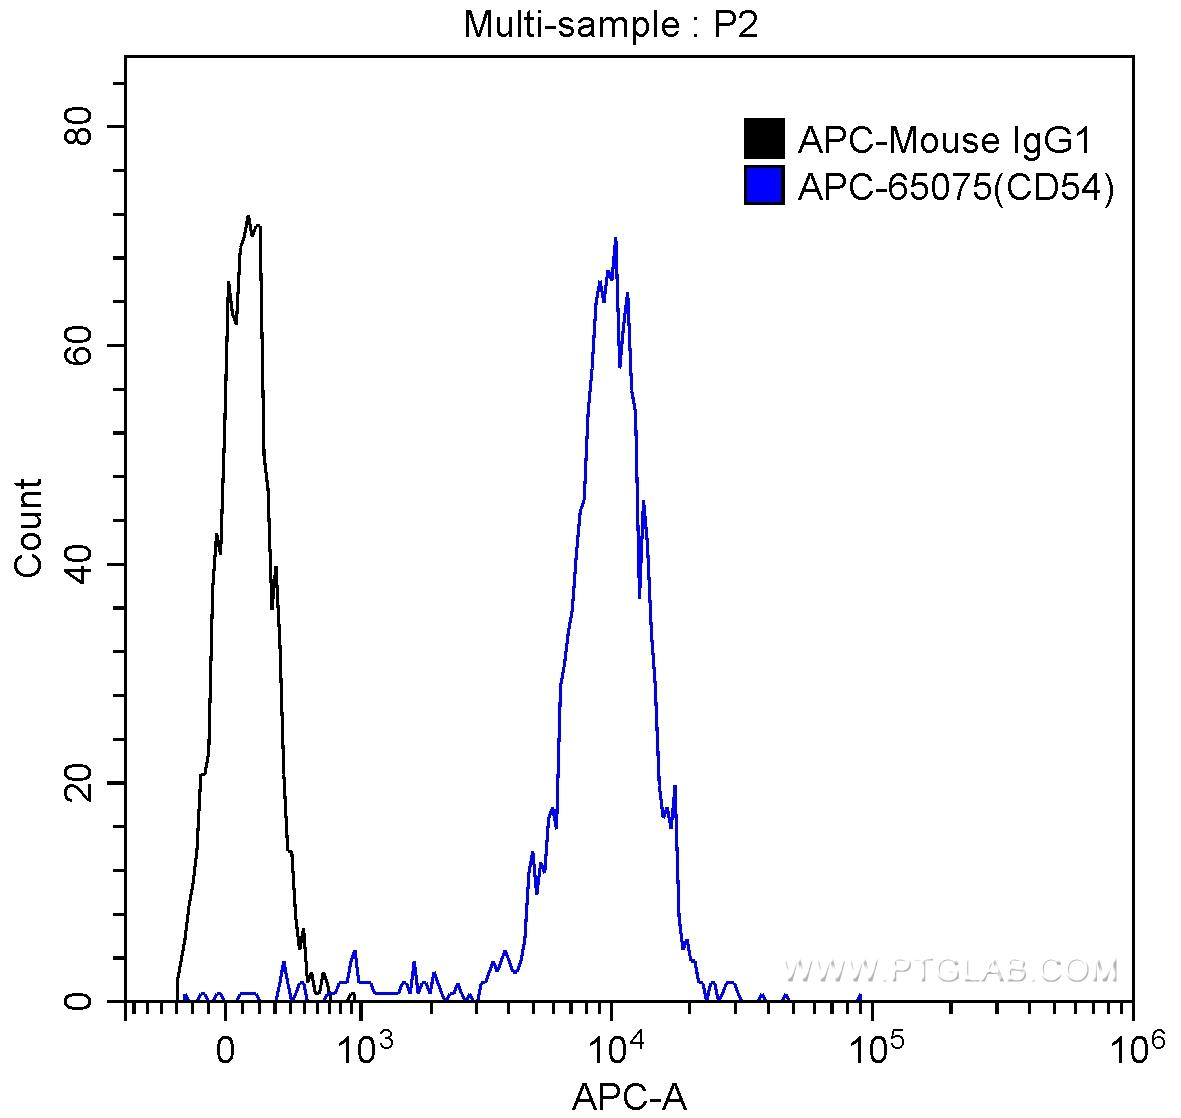 1X10^6 human peripheral blood monocytes were surface stained with 5 ul APC Anti-Human CD54 (ICAM-1) (APC-65075, Clone: 15.2) (blue), or isotype control antibody (black). Samples were not fixed.